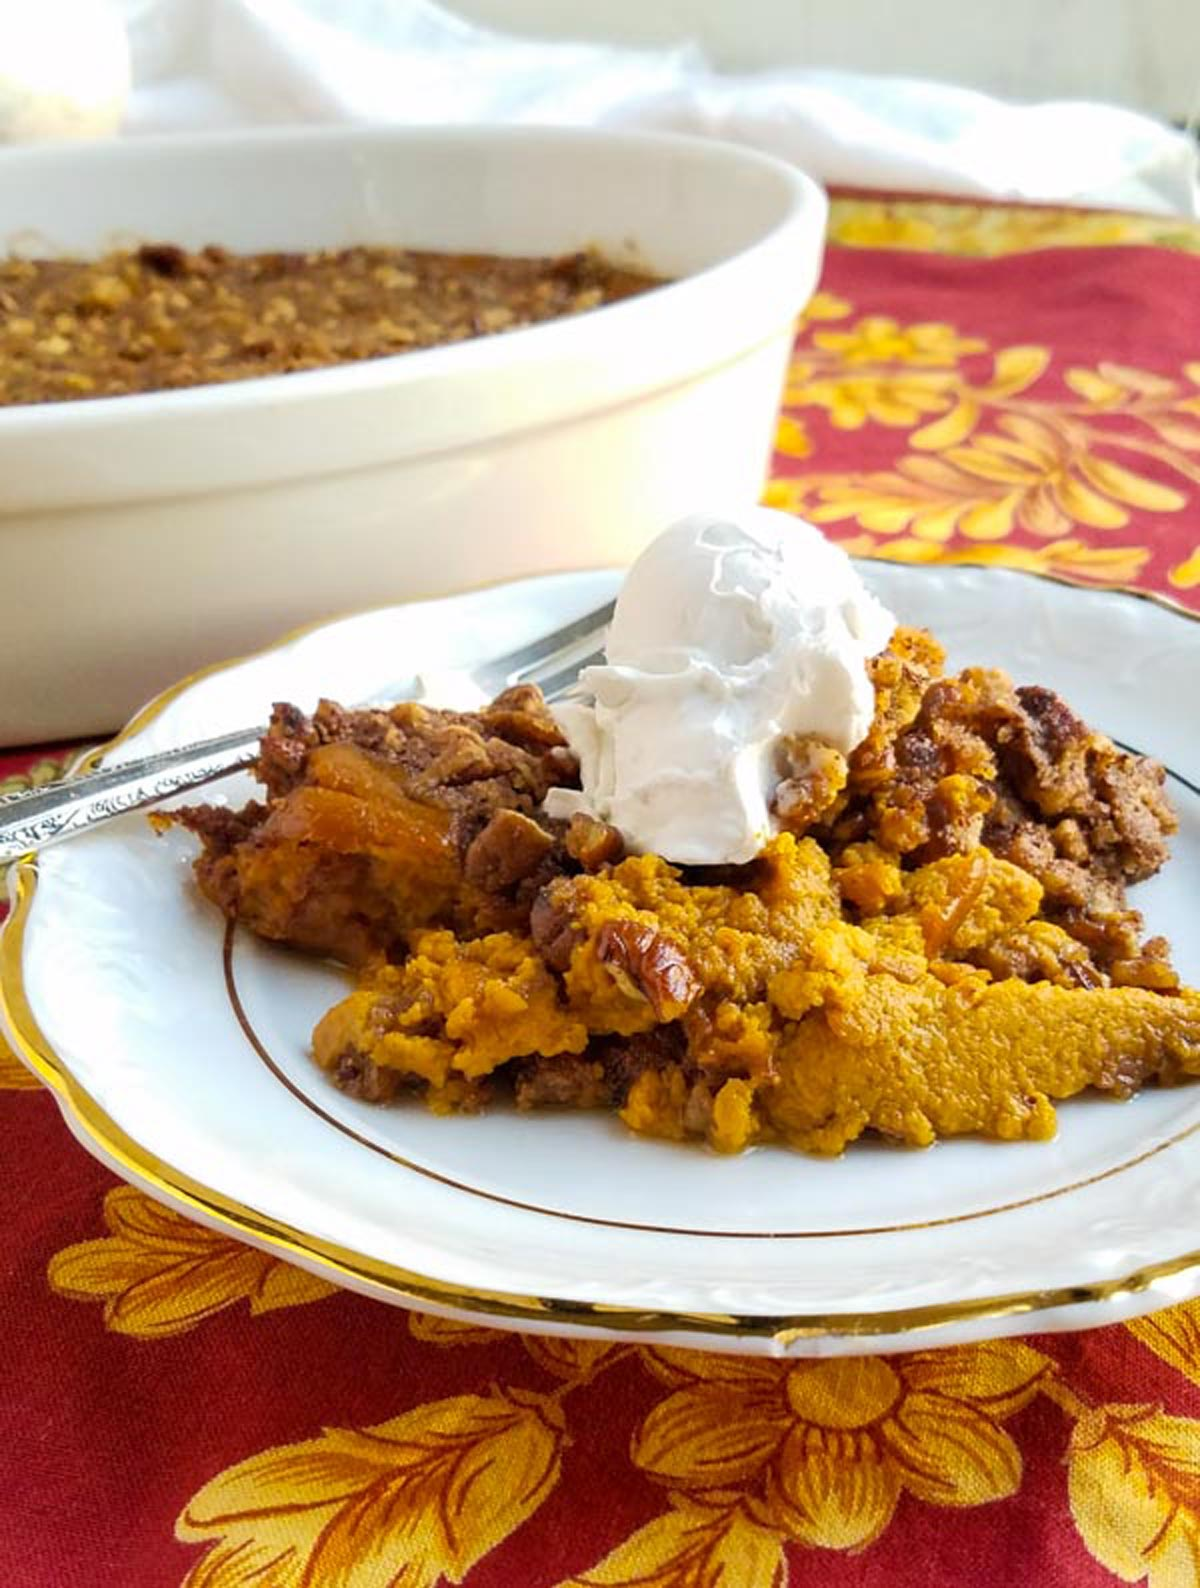 gluten-free dairy-free sweet potato casserole on a plate